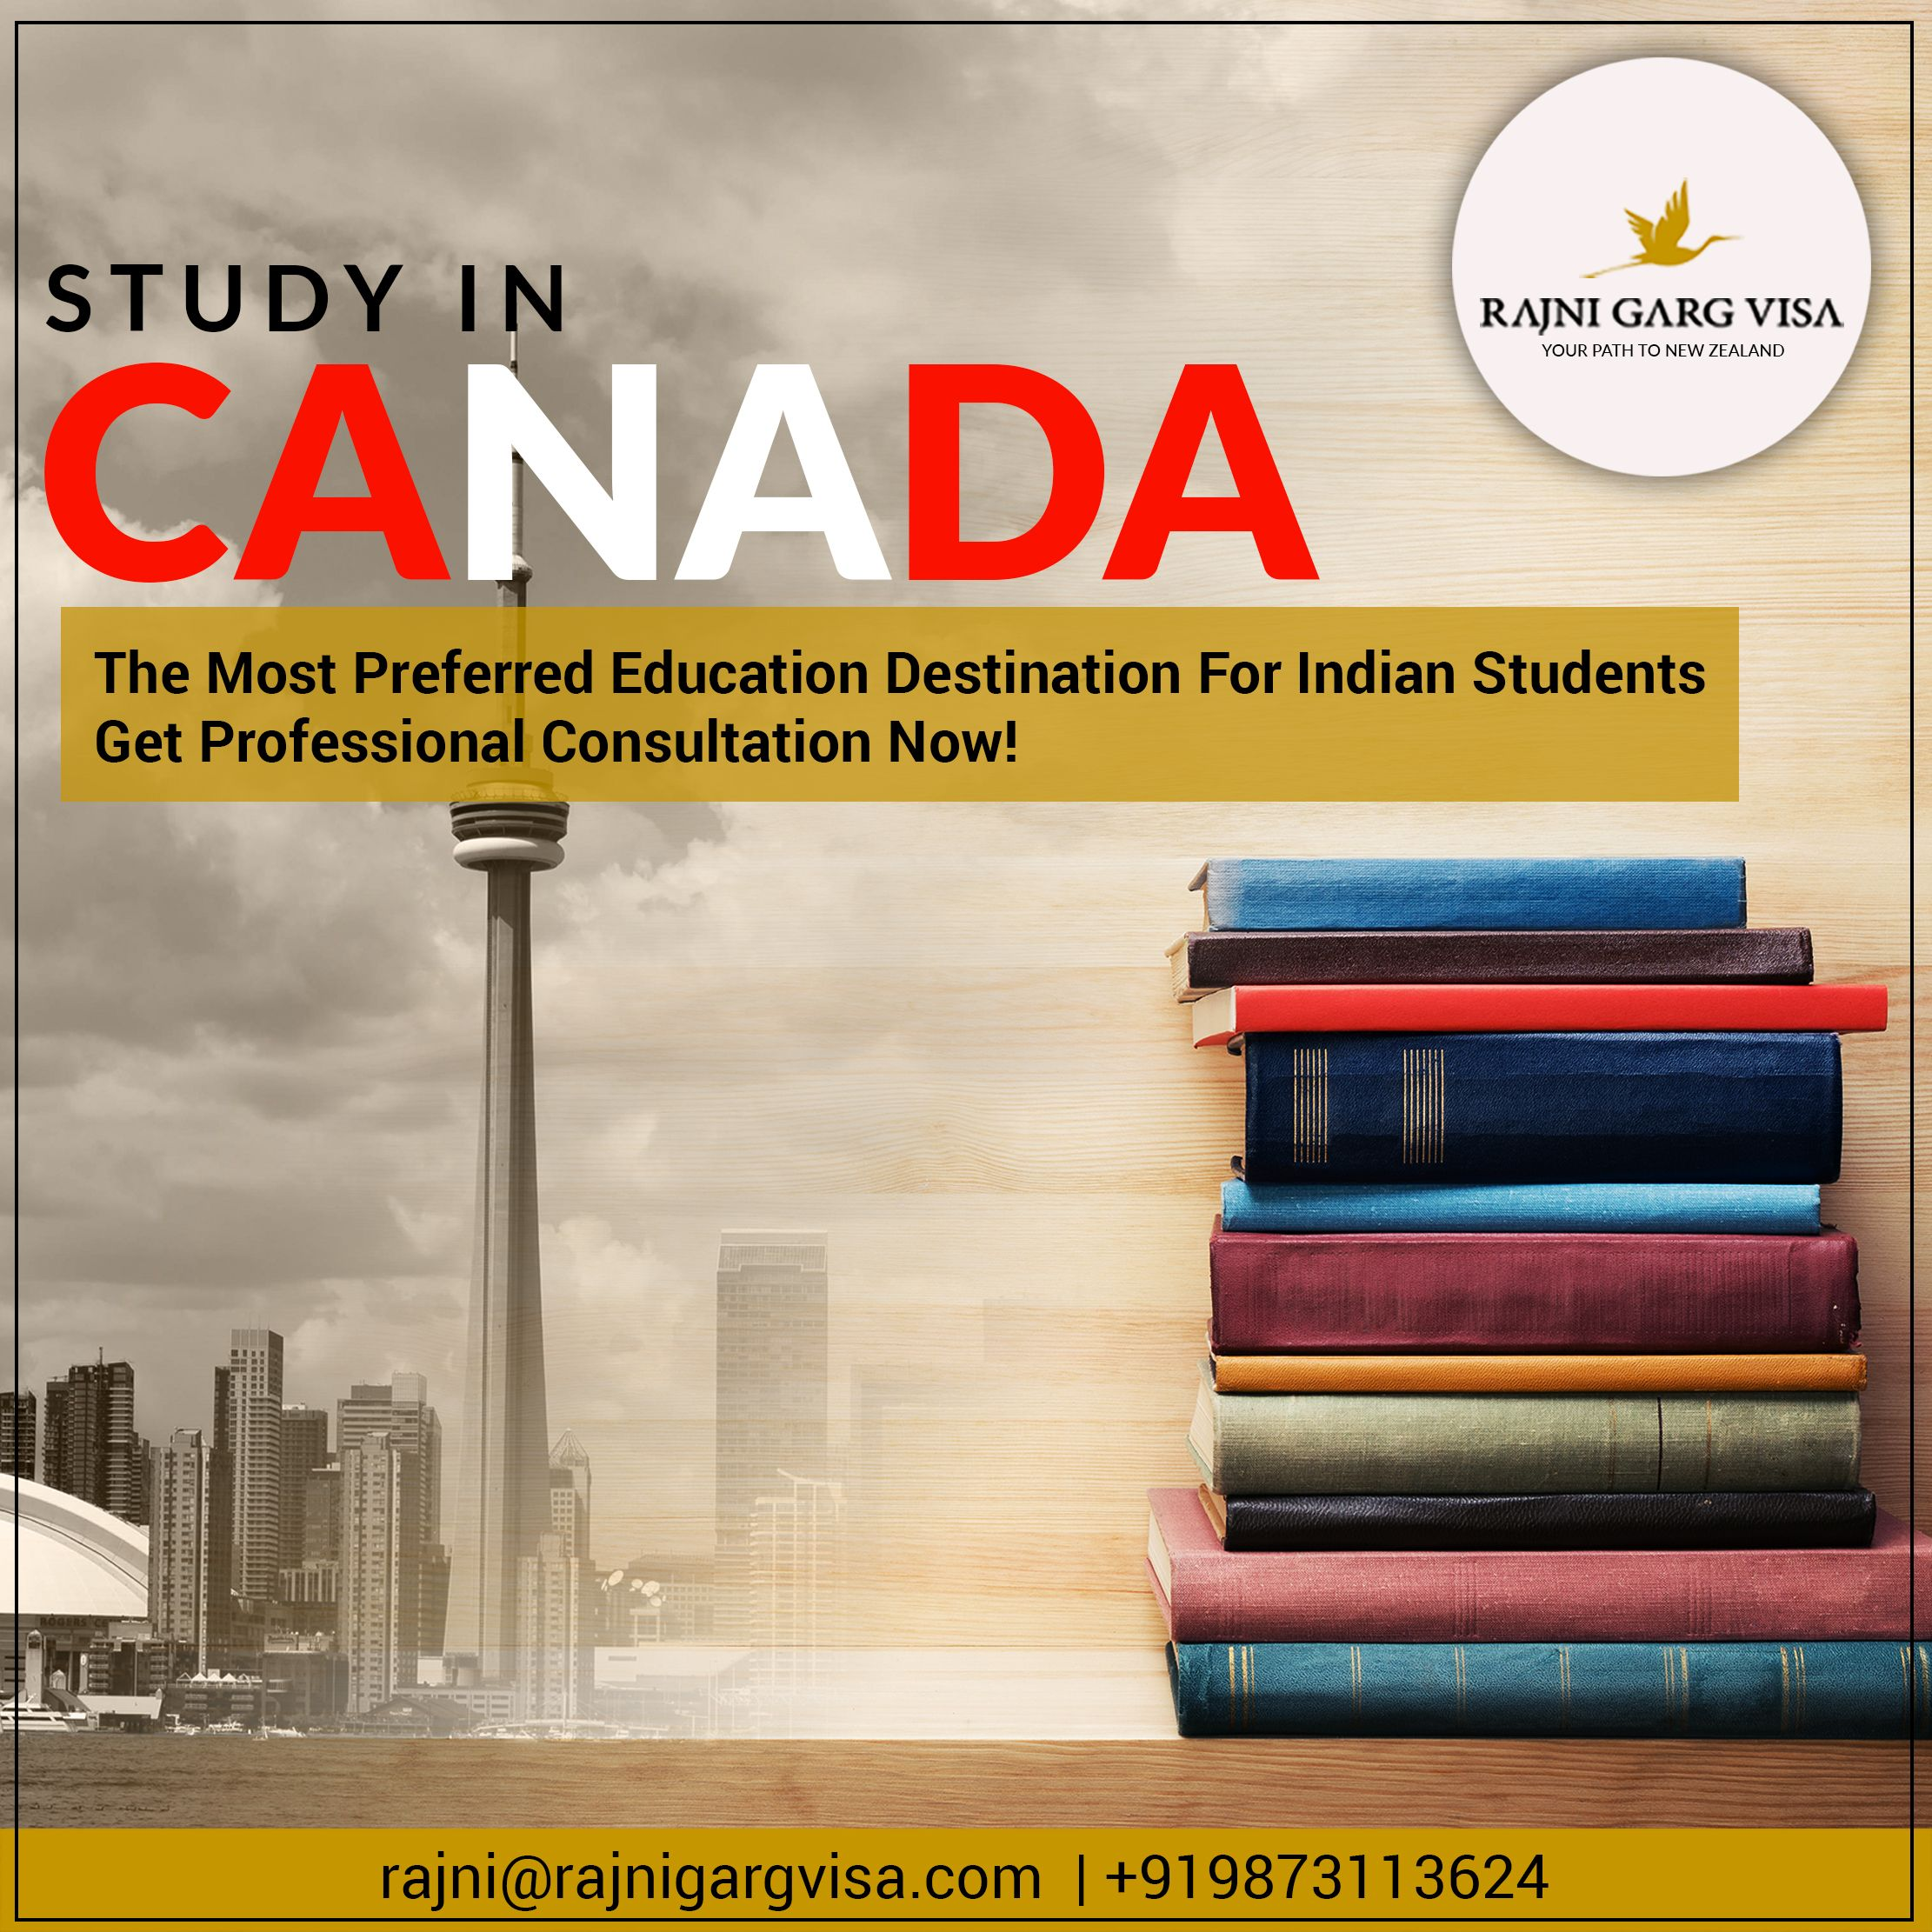 The Education In Canada Helps Prepare A Student To Develop Skills